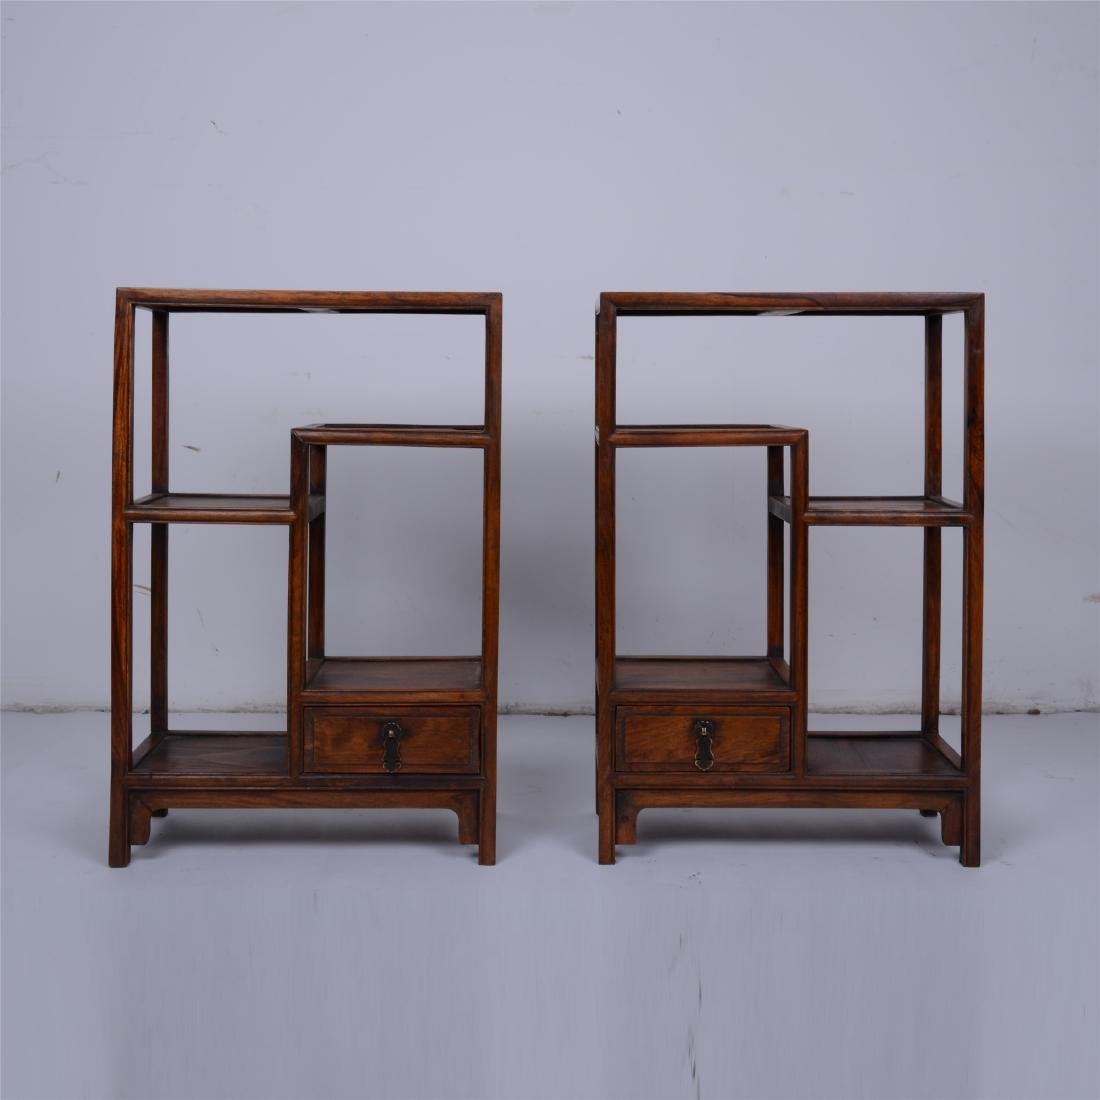 CHINESE ROSEWOOD ANTIQUE SHOW CASE